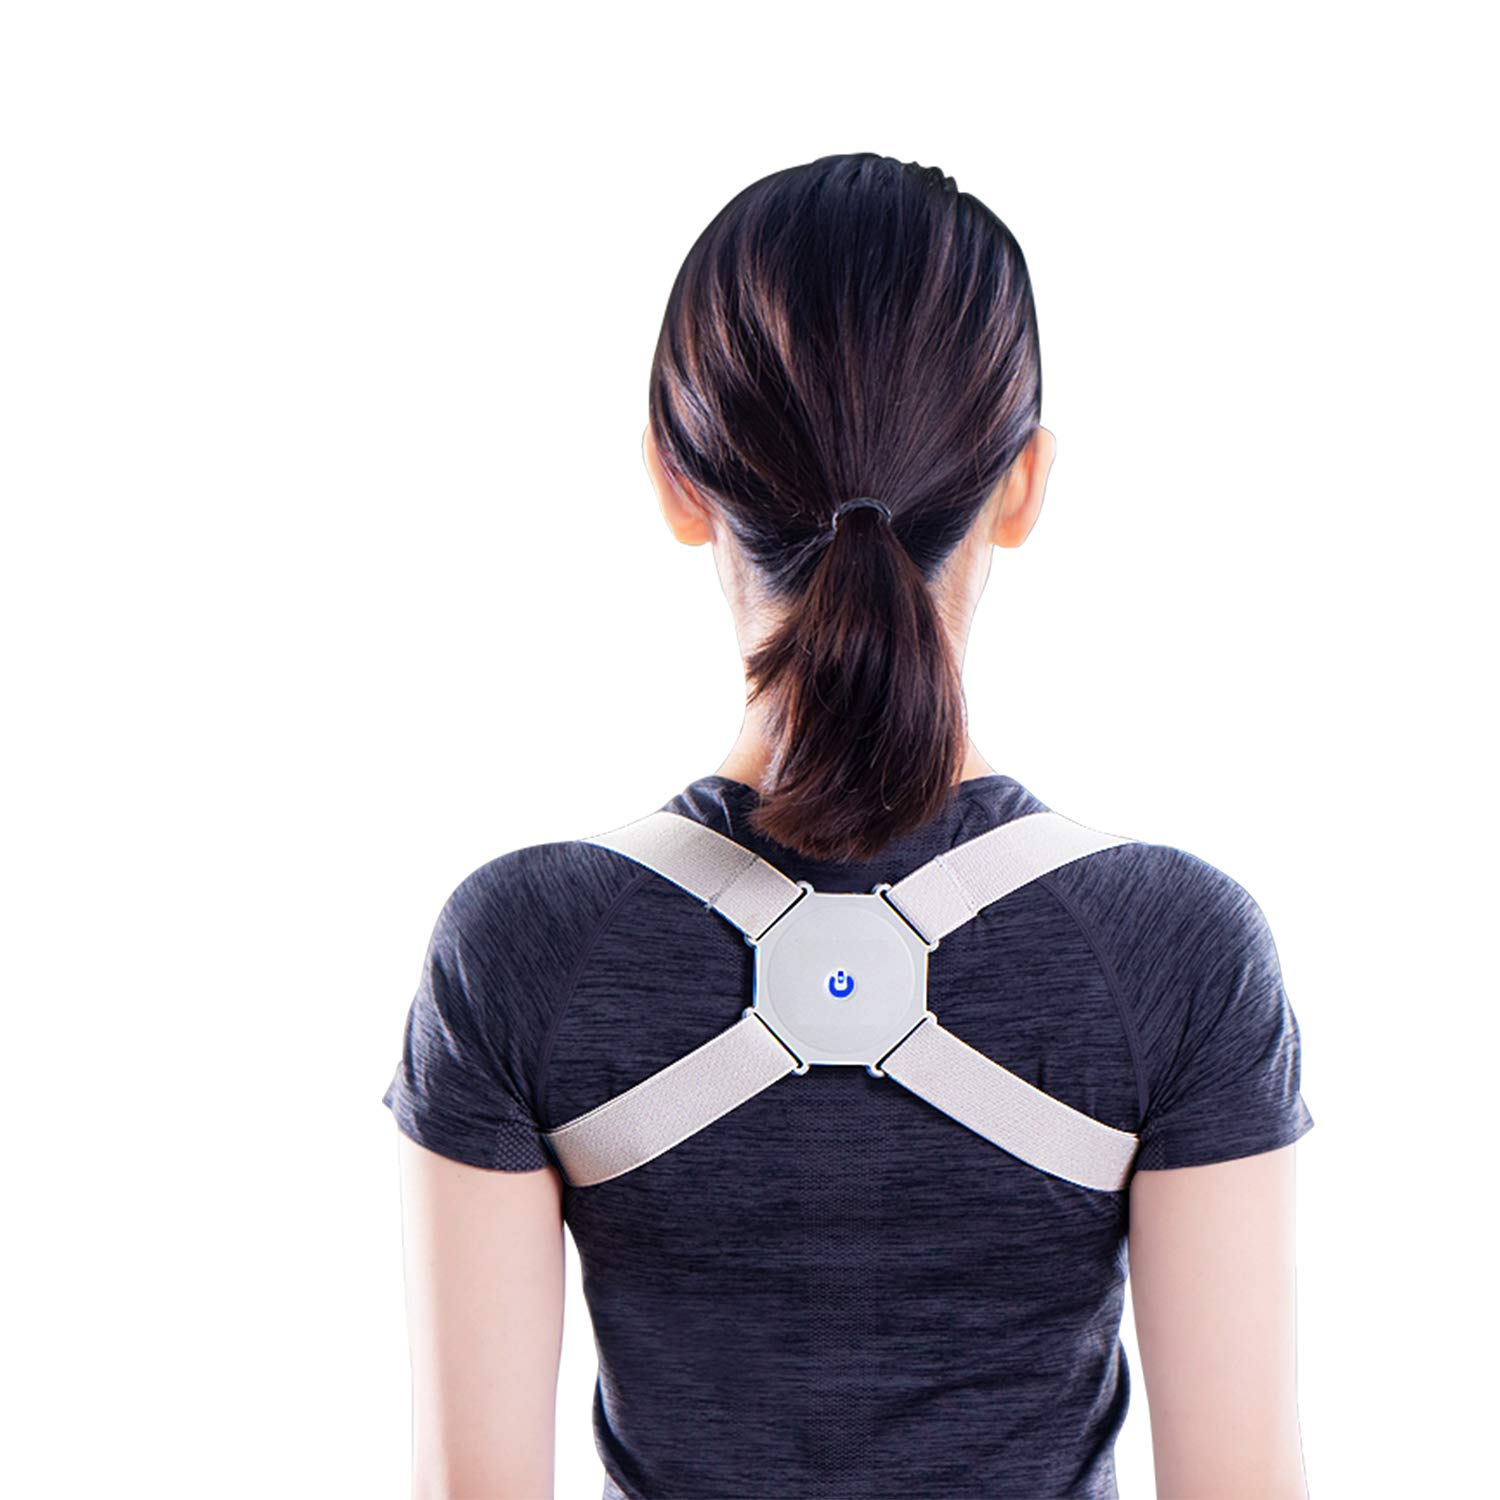 Max 58% OFF Posture Corrector for Men Women and Back Brace quality assurance Kids Intell with